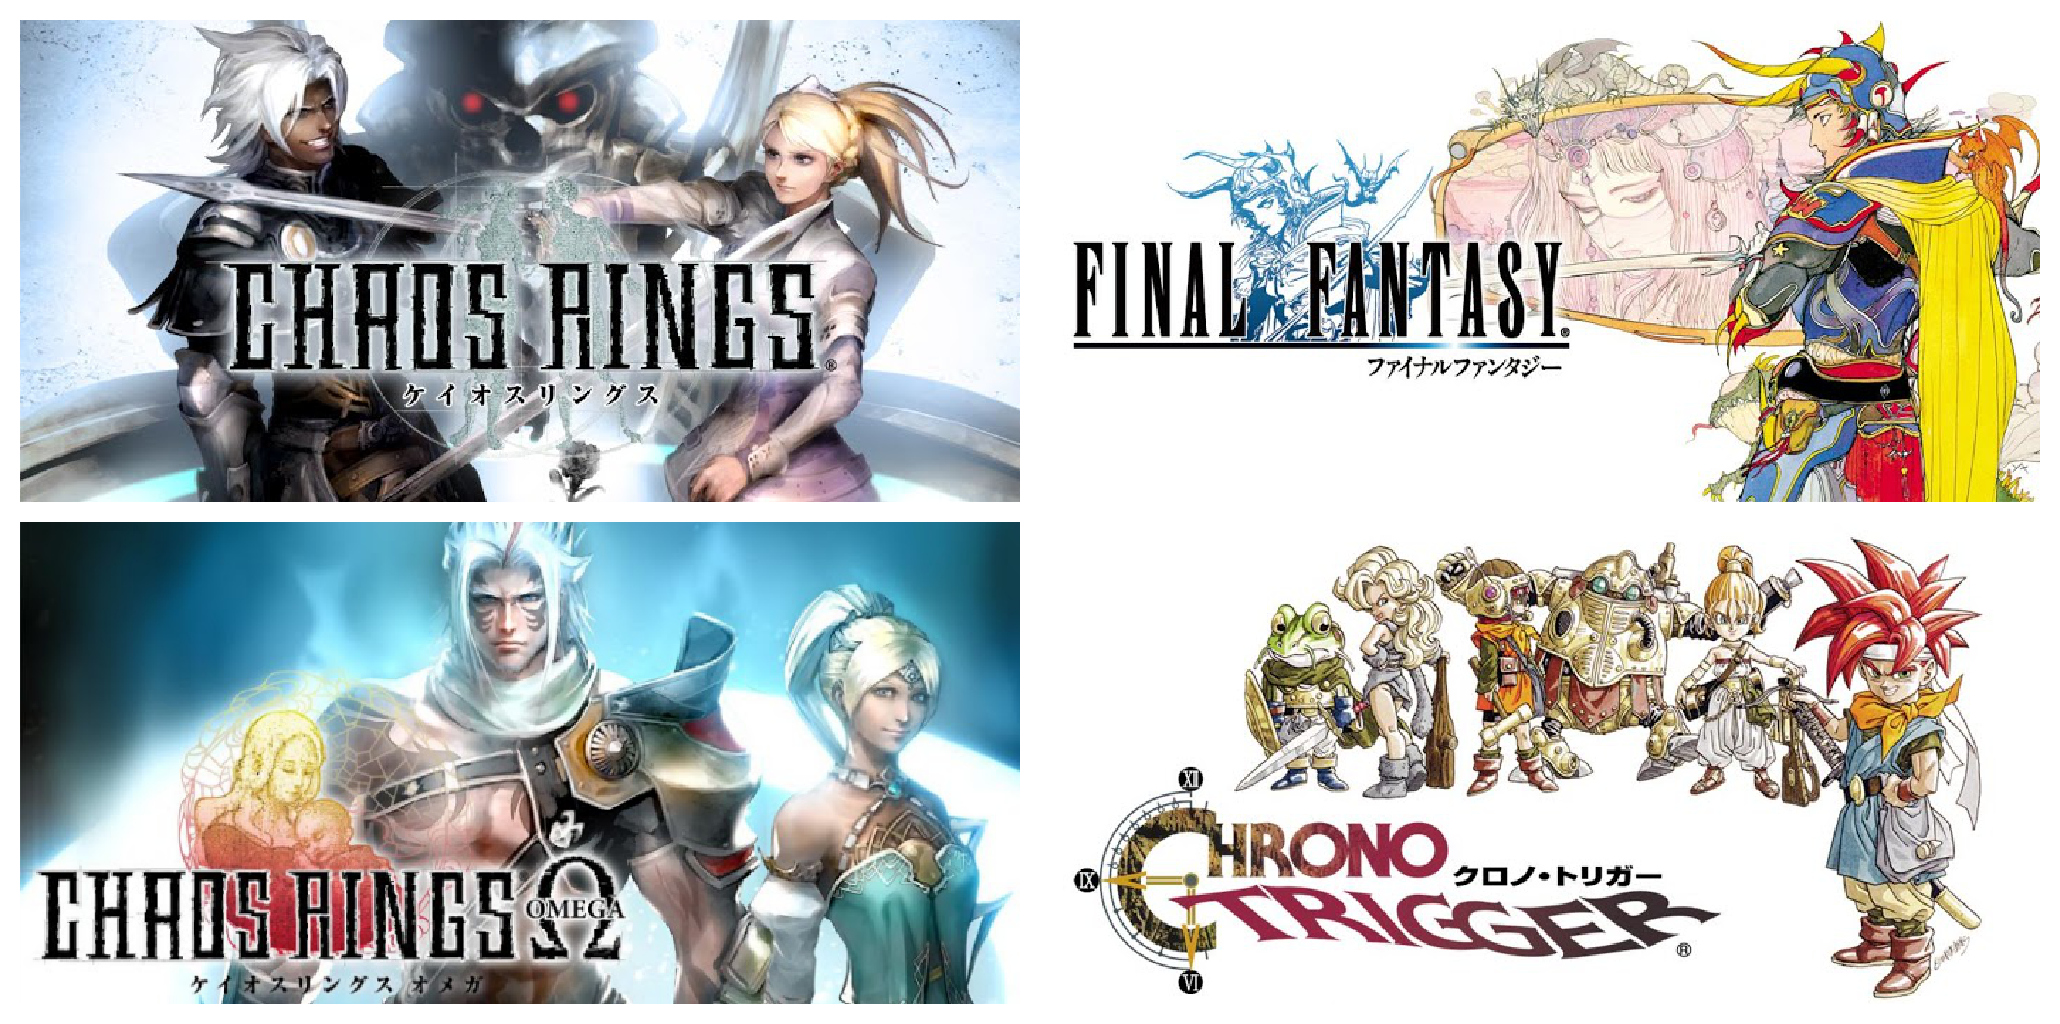 Square Enix Will Release Their Games for Android Market